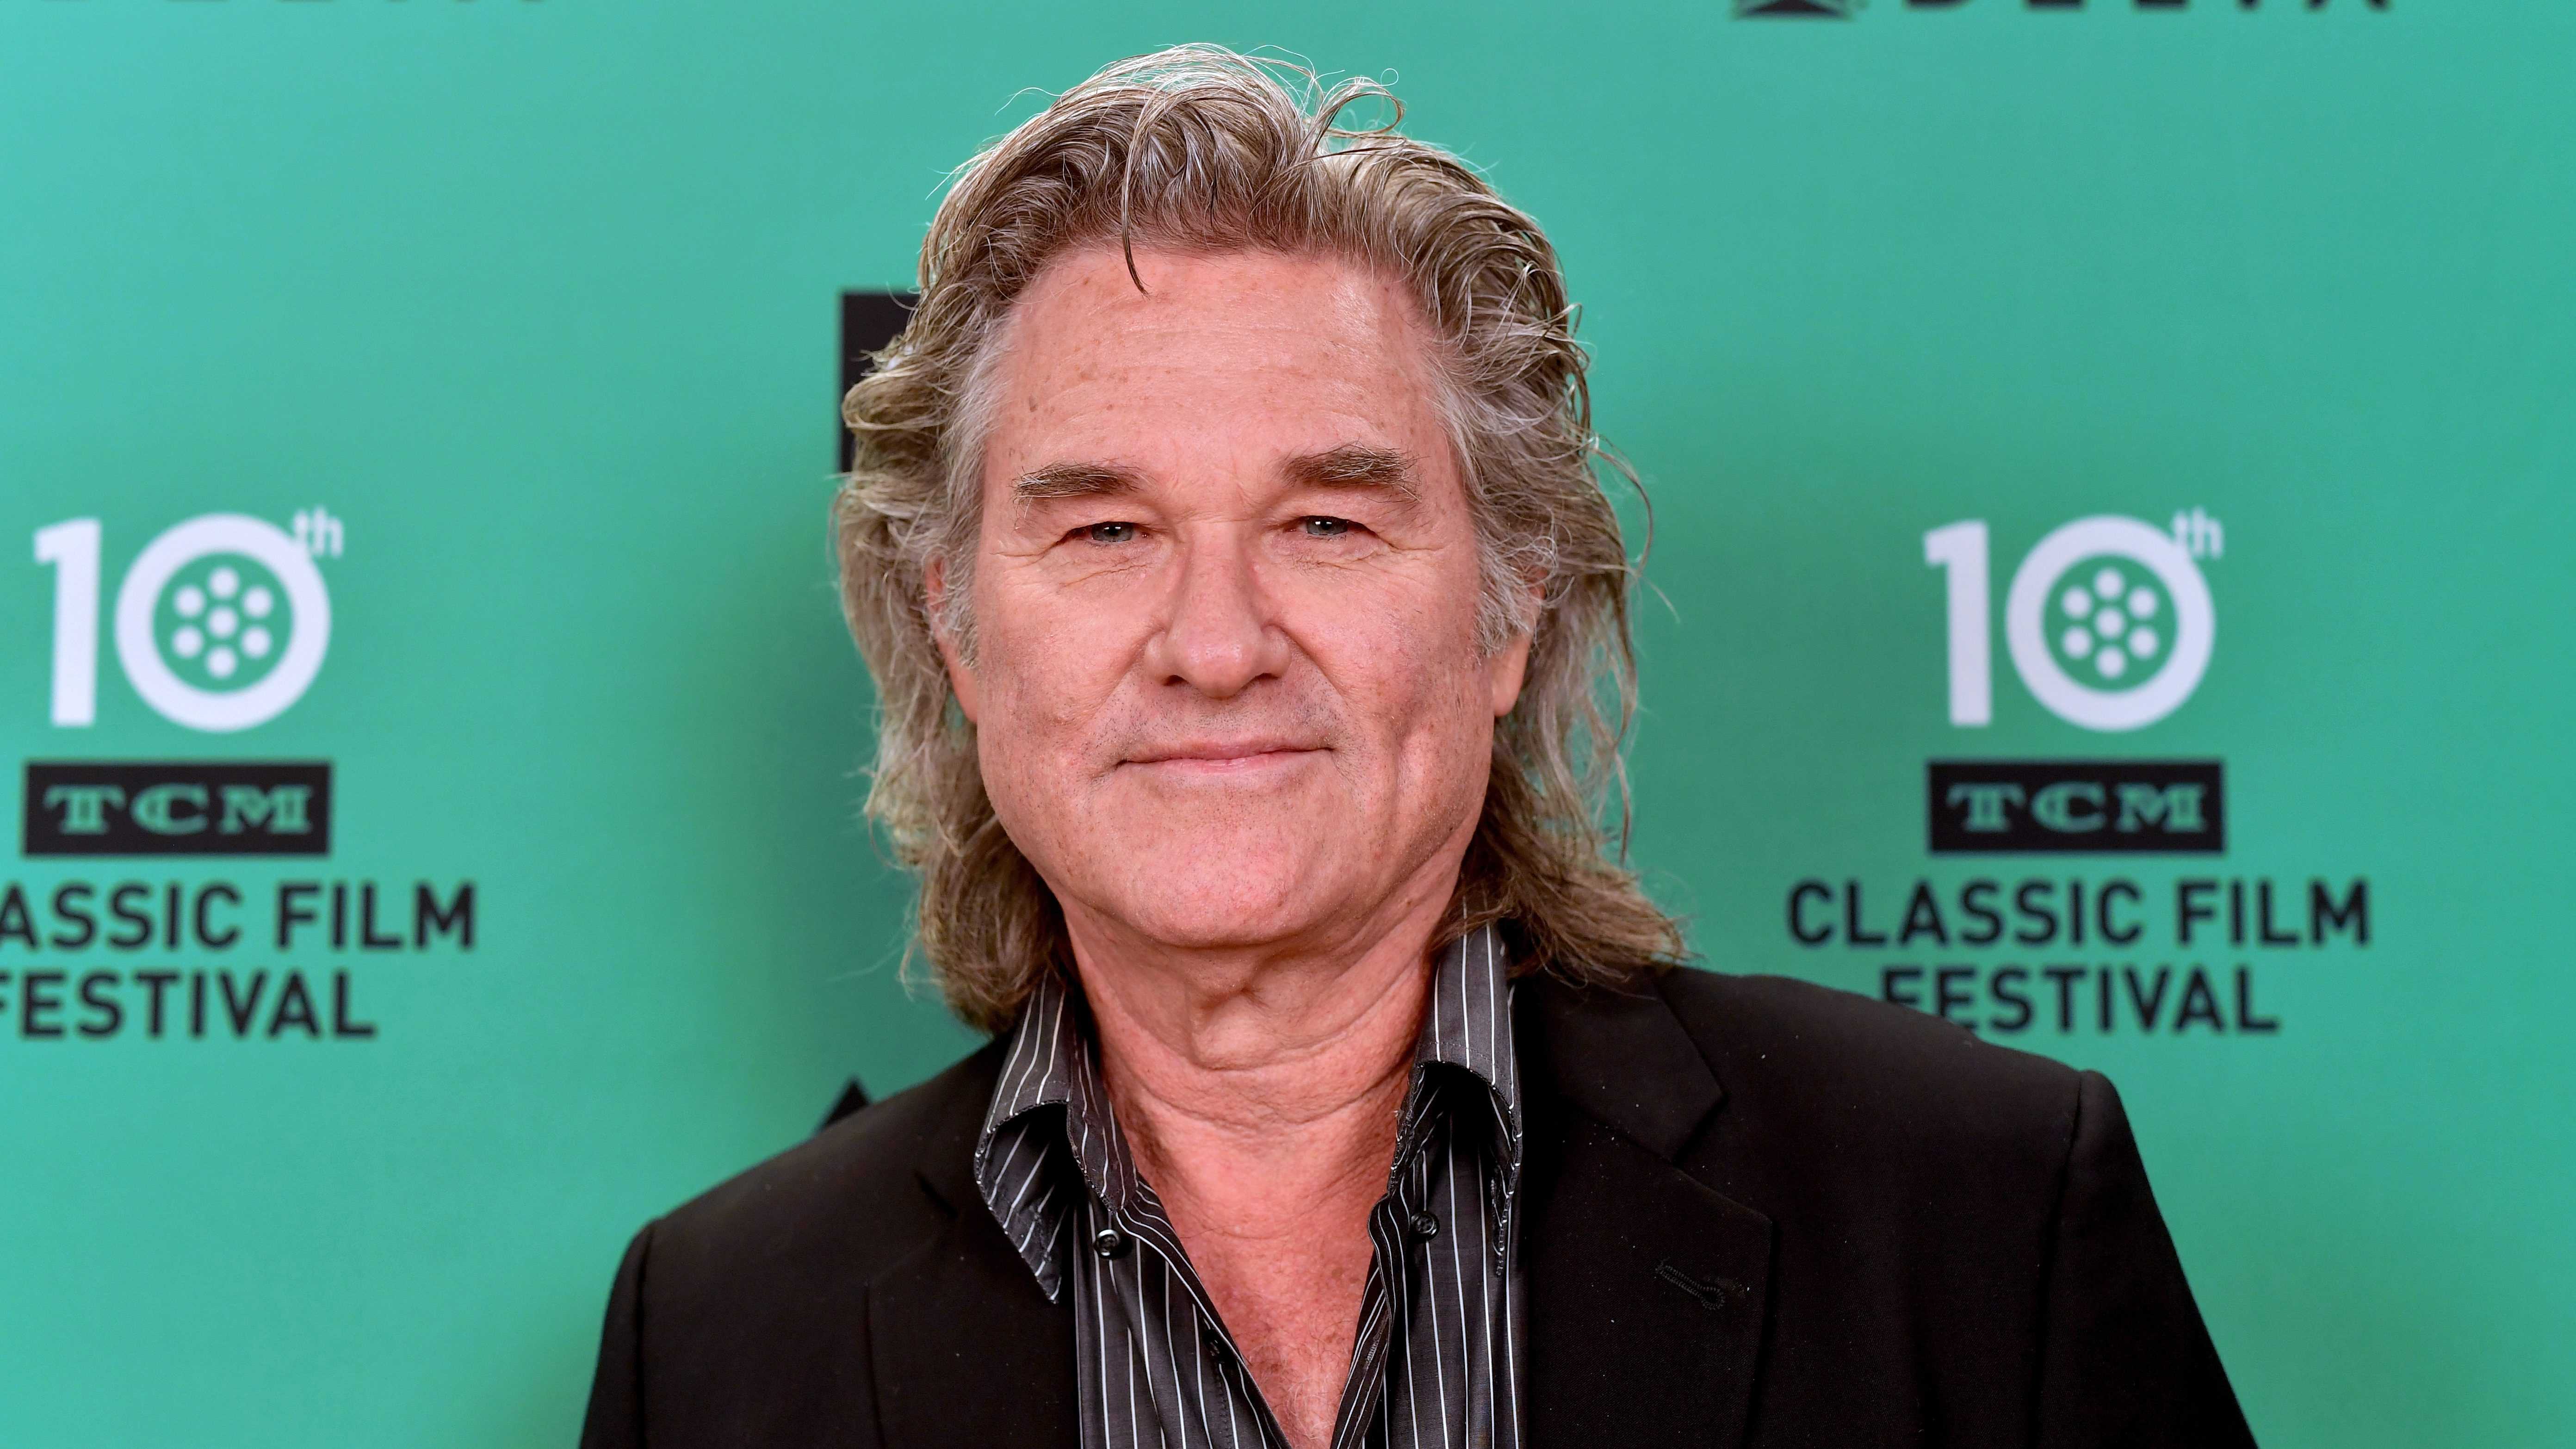 Kurt Russell's New Role Reminds Him of the Old Days in Hollywood: 'I Grew Up in That World'